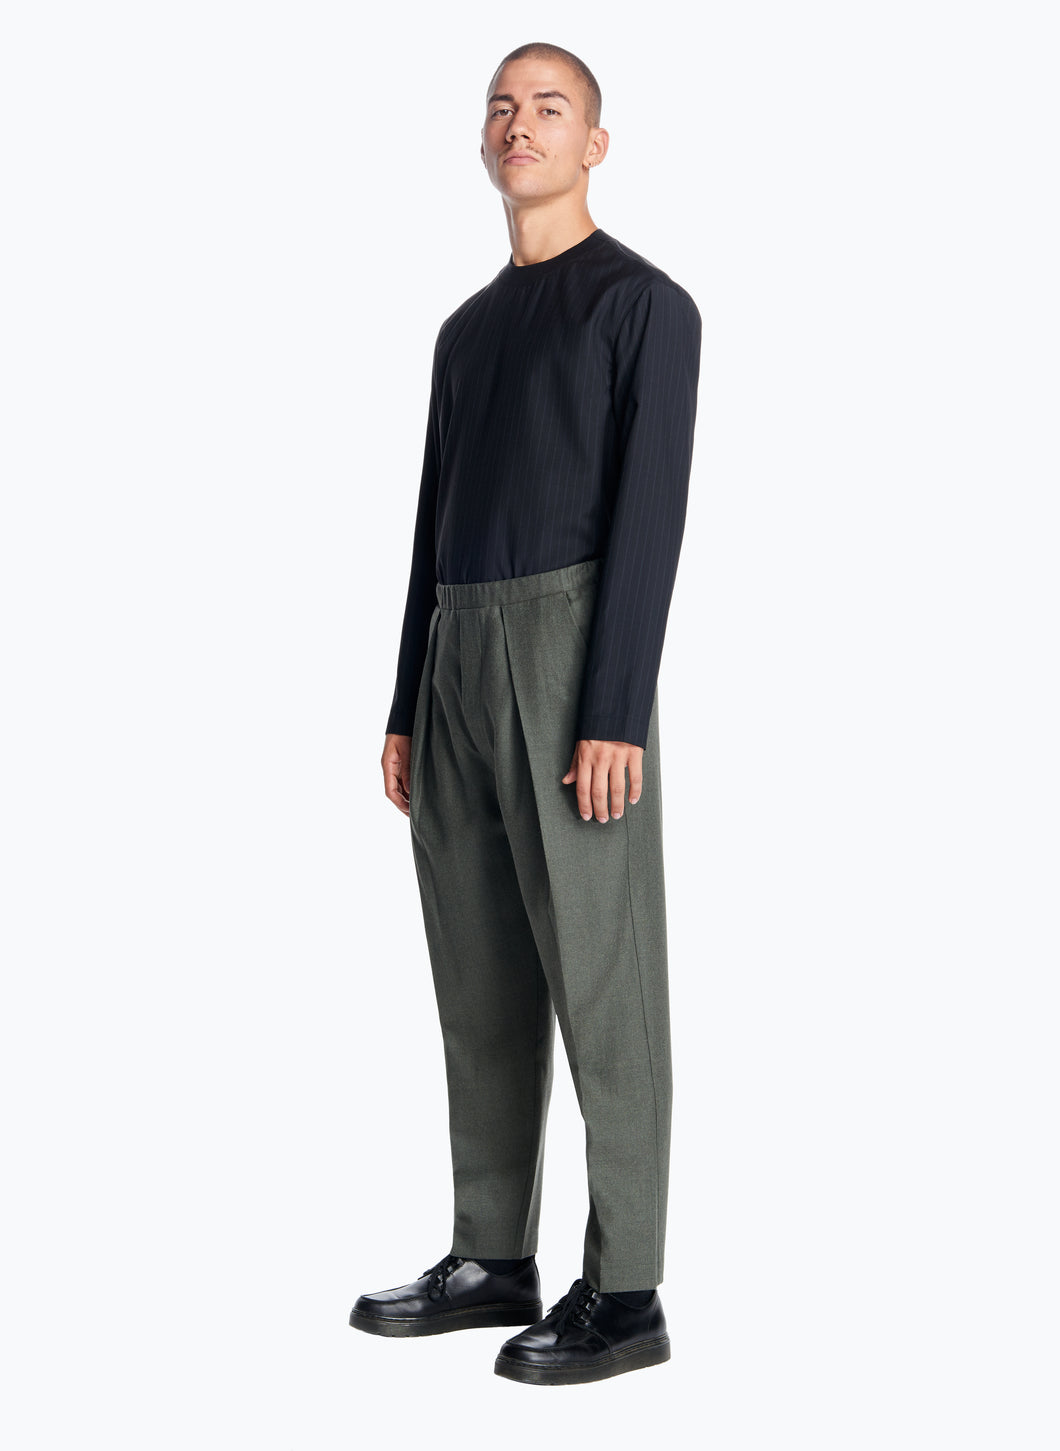 Elastic Waist Pants with Deep Pleats in Olive Flannel Wool